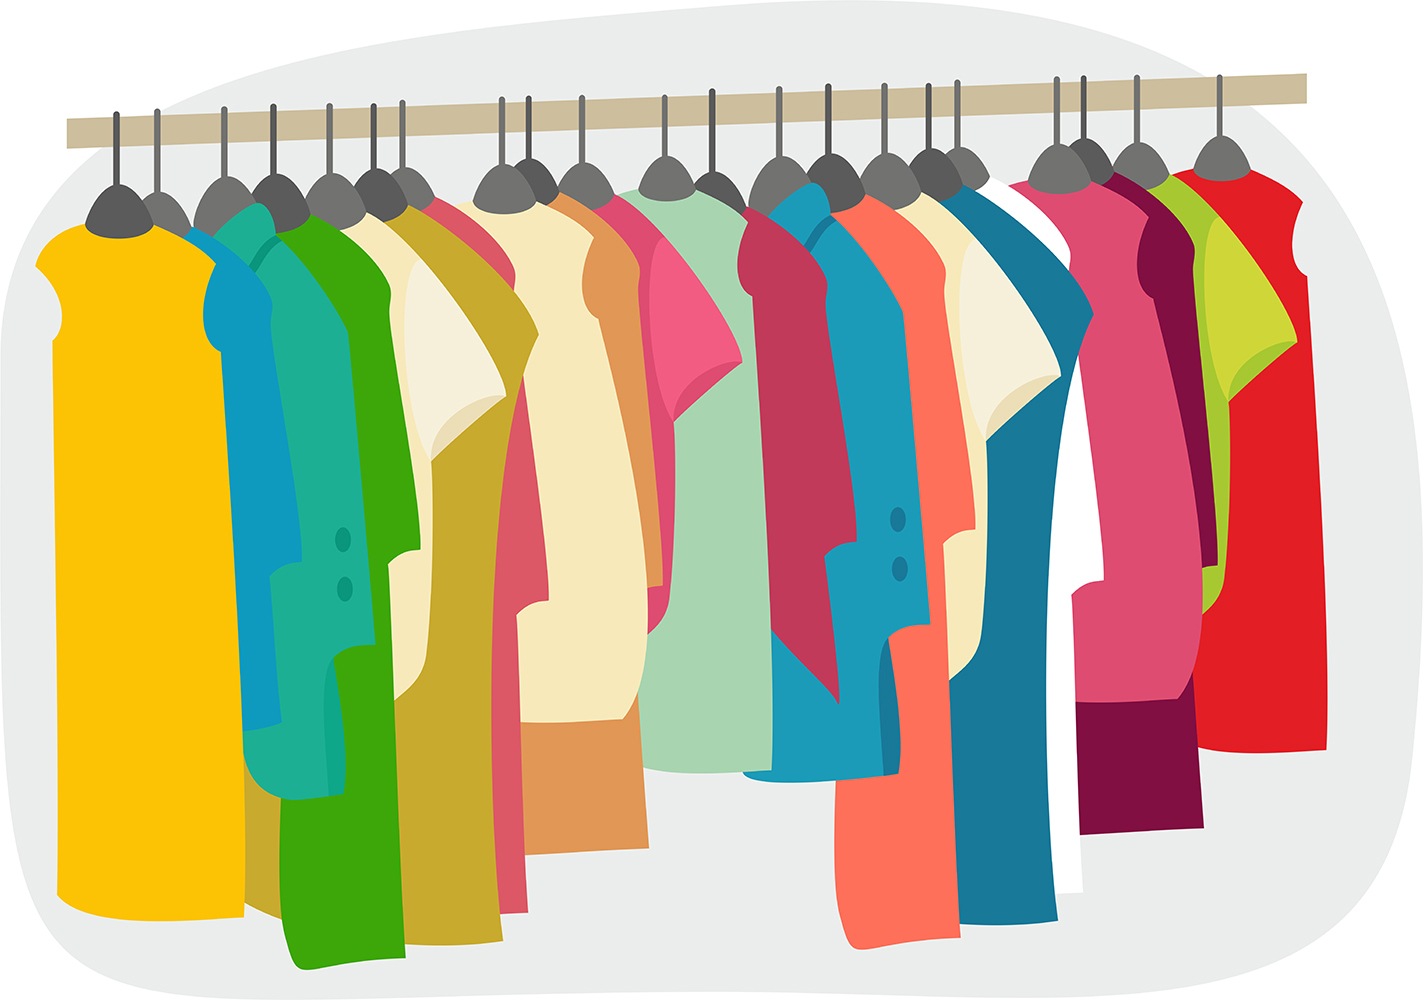 Clothes clipartix. Clothing clipart